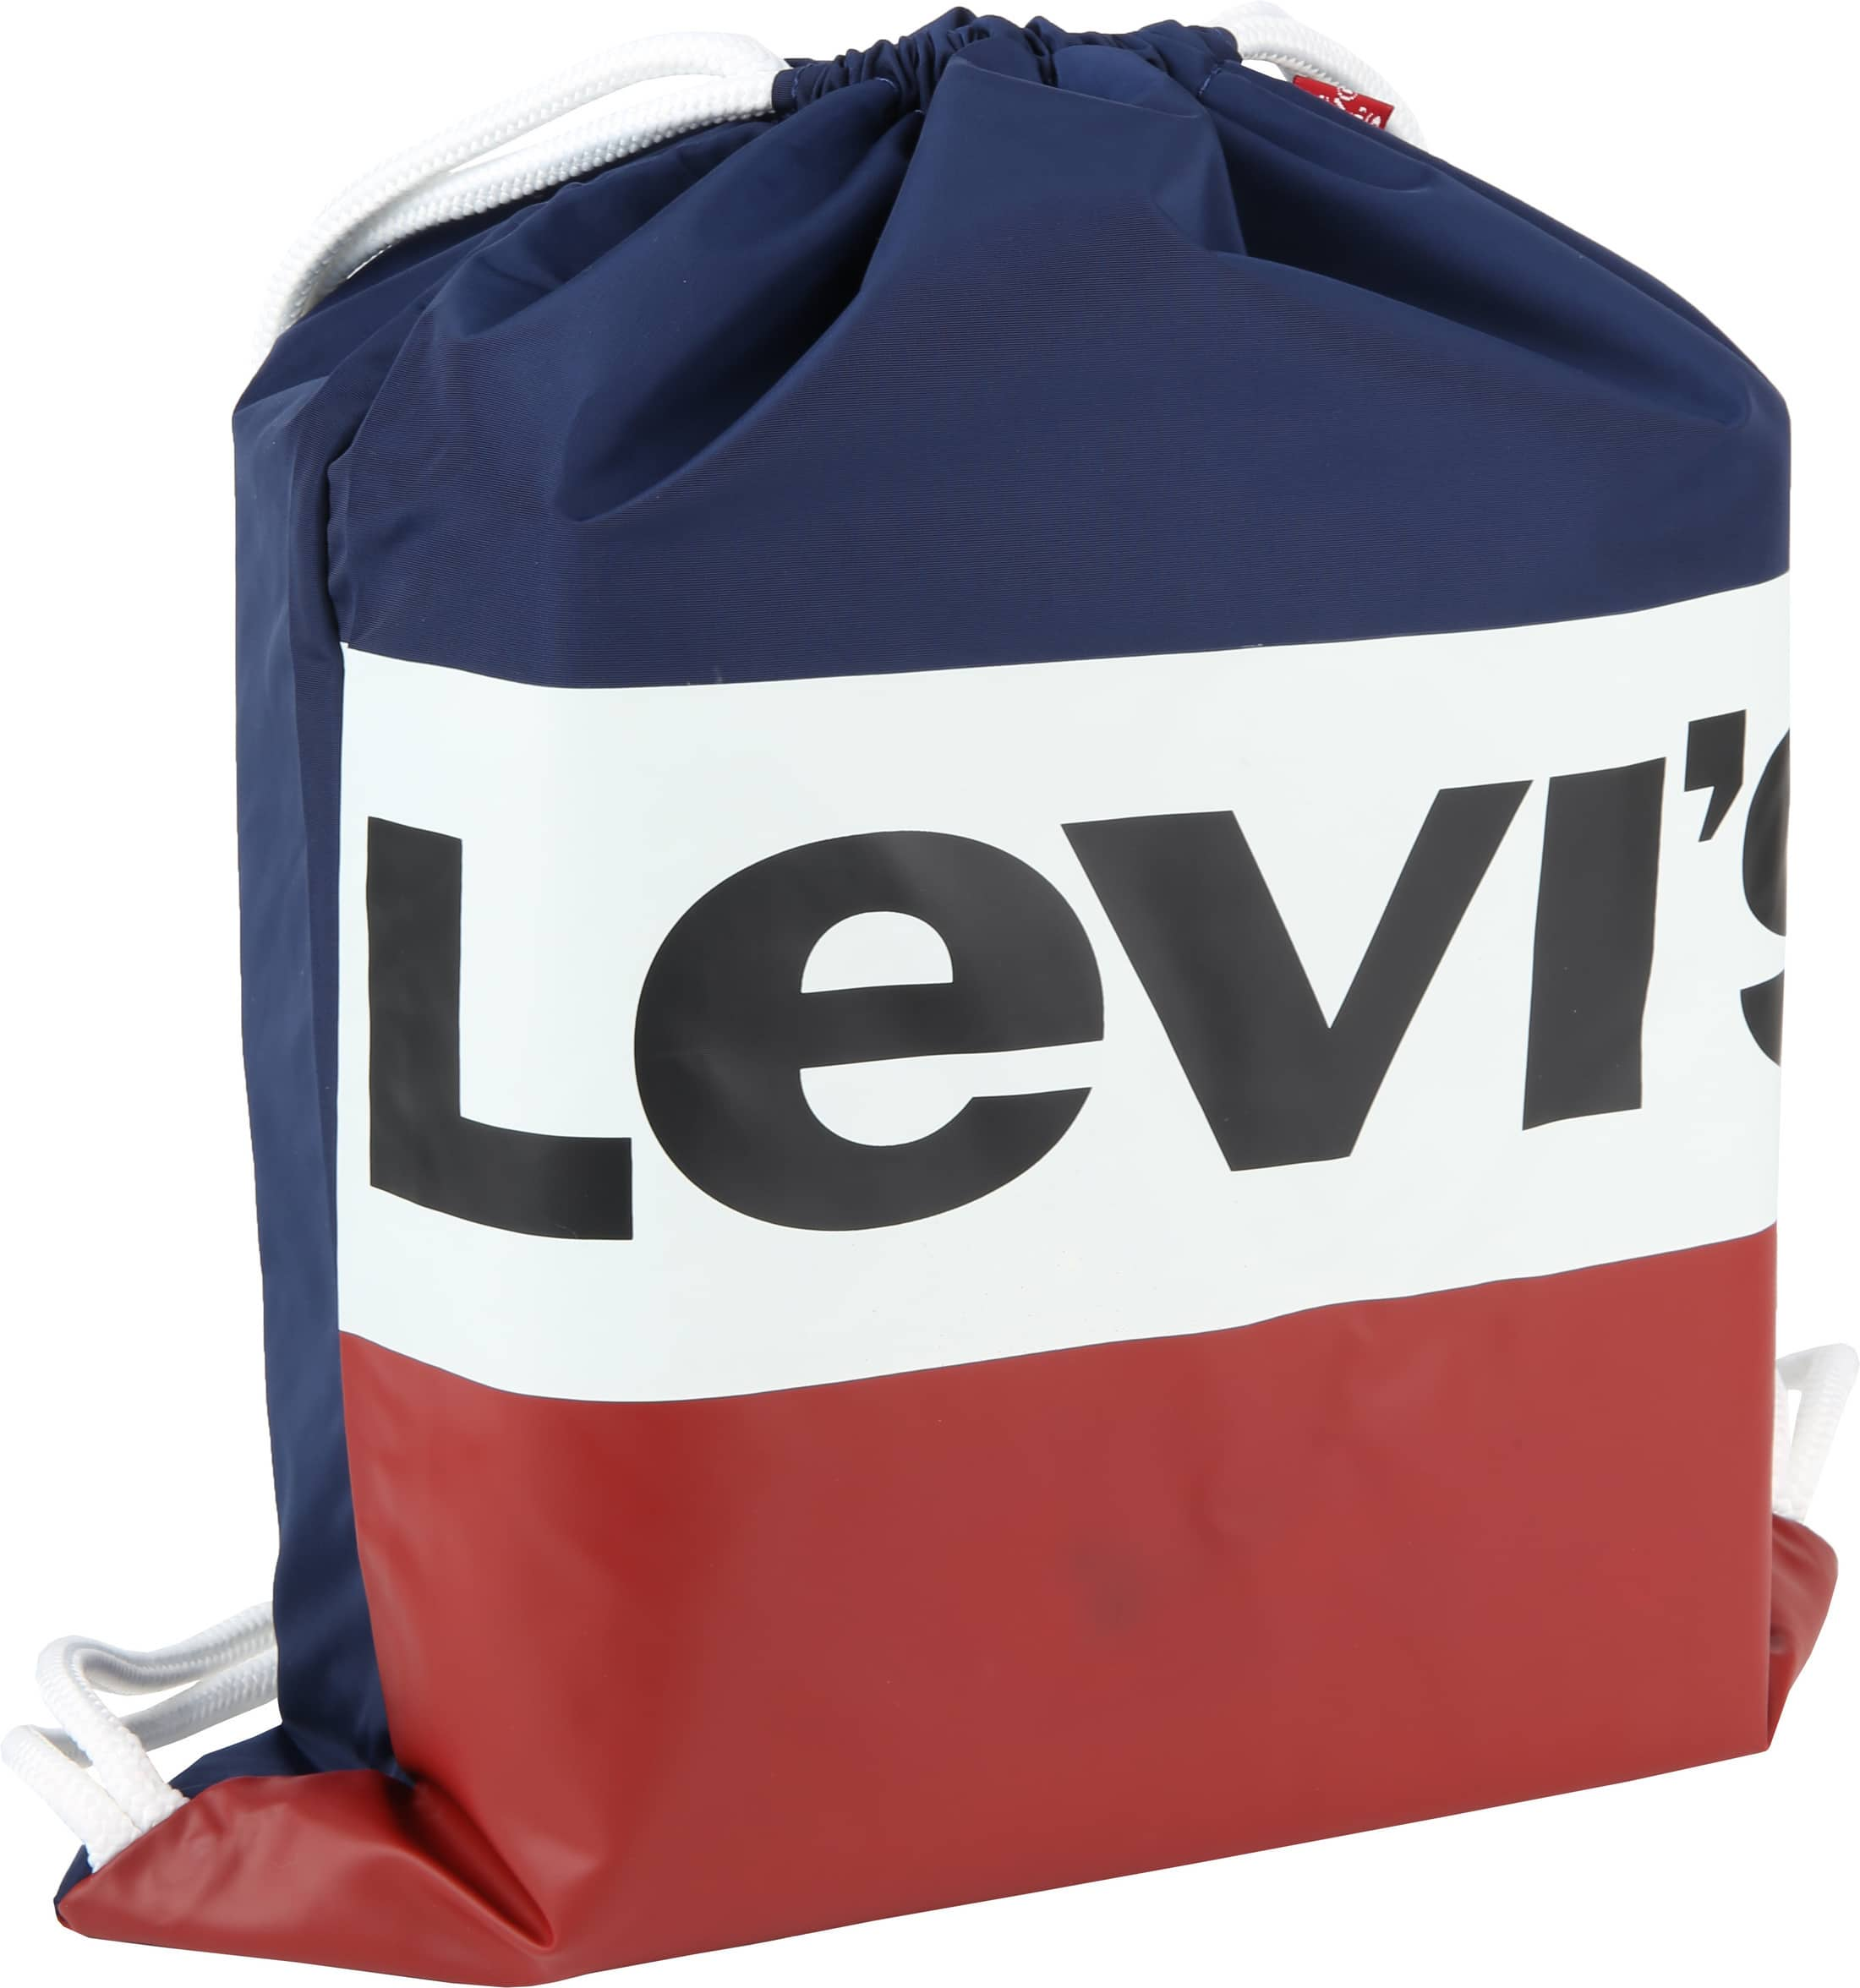 b1976f14916 Levi's Back Everyday Gym 38010-0055 order online | Suitable